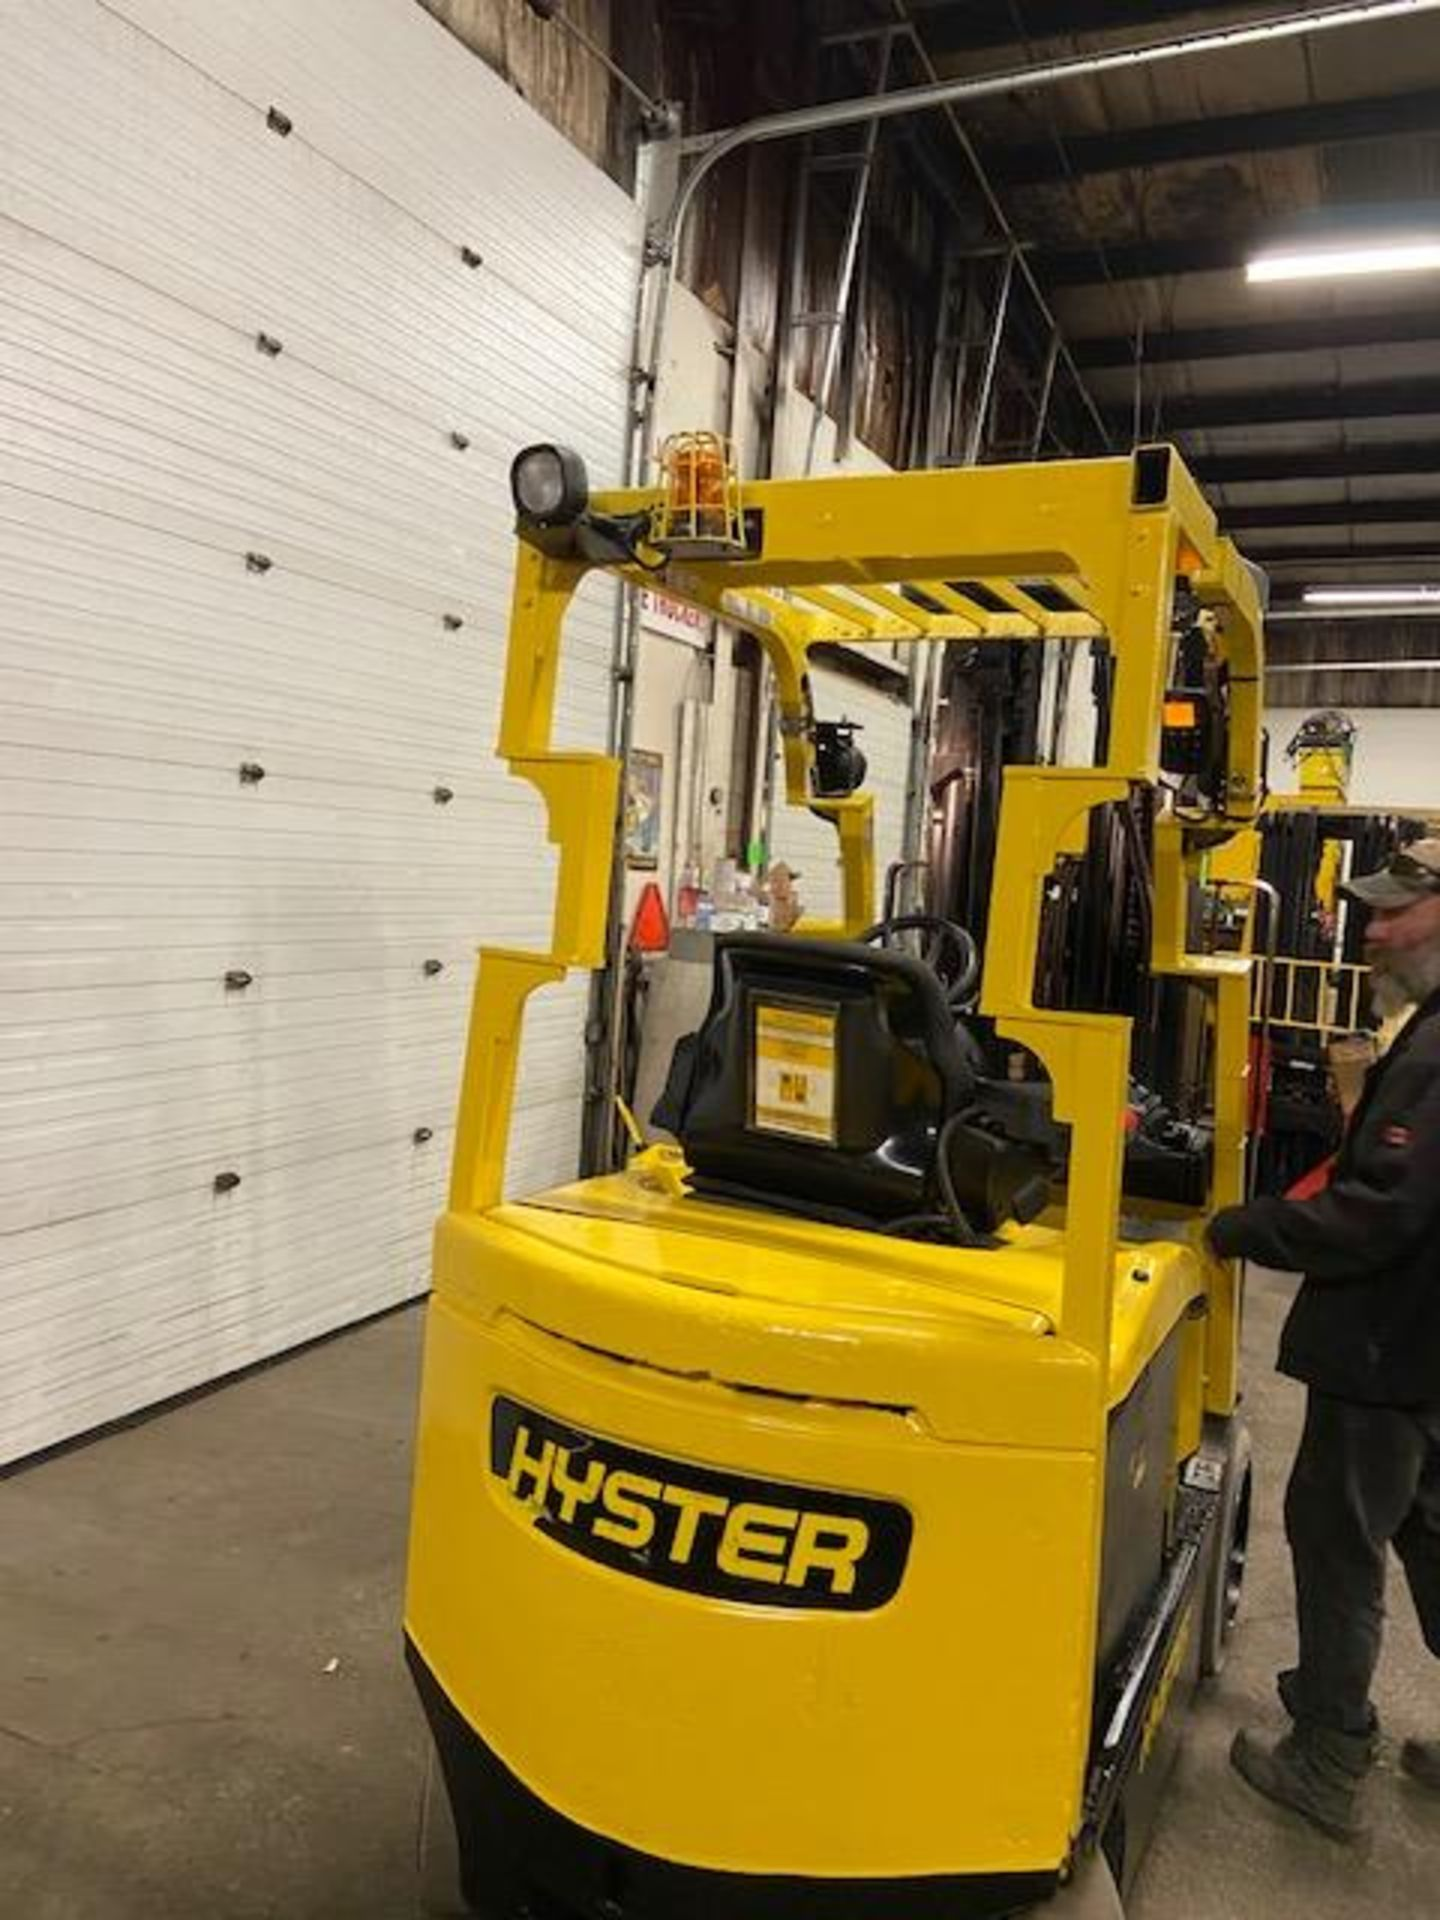 FREE CUSTOMS - 2015 Hyster 5000lbs Capacity Forklift Electric with 4-STAGE MAST with sideshift & - Image 4 of 4